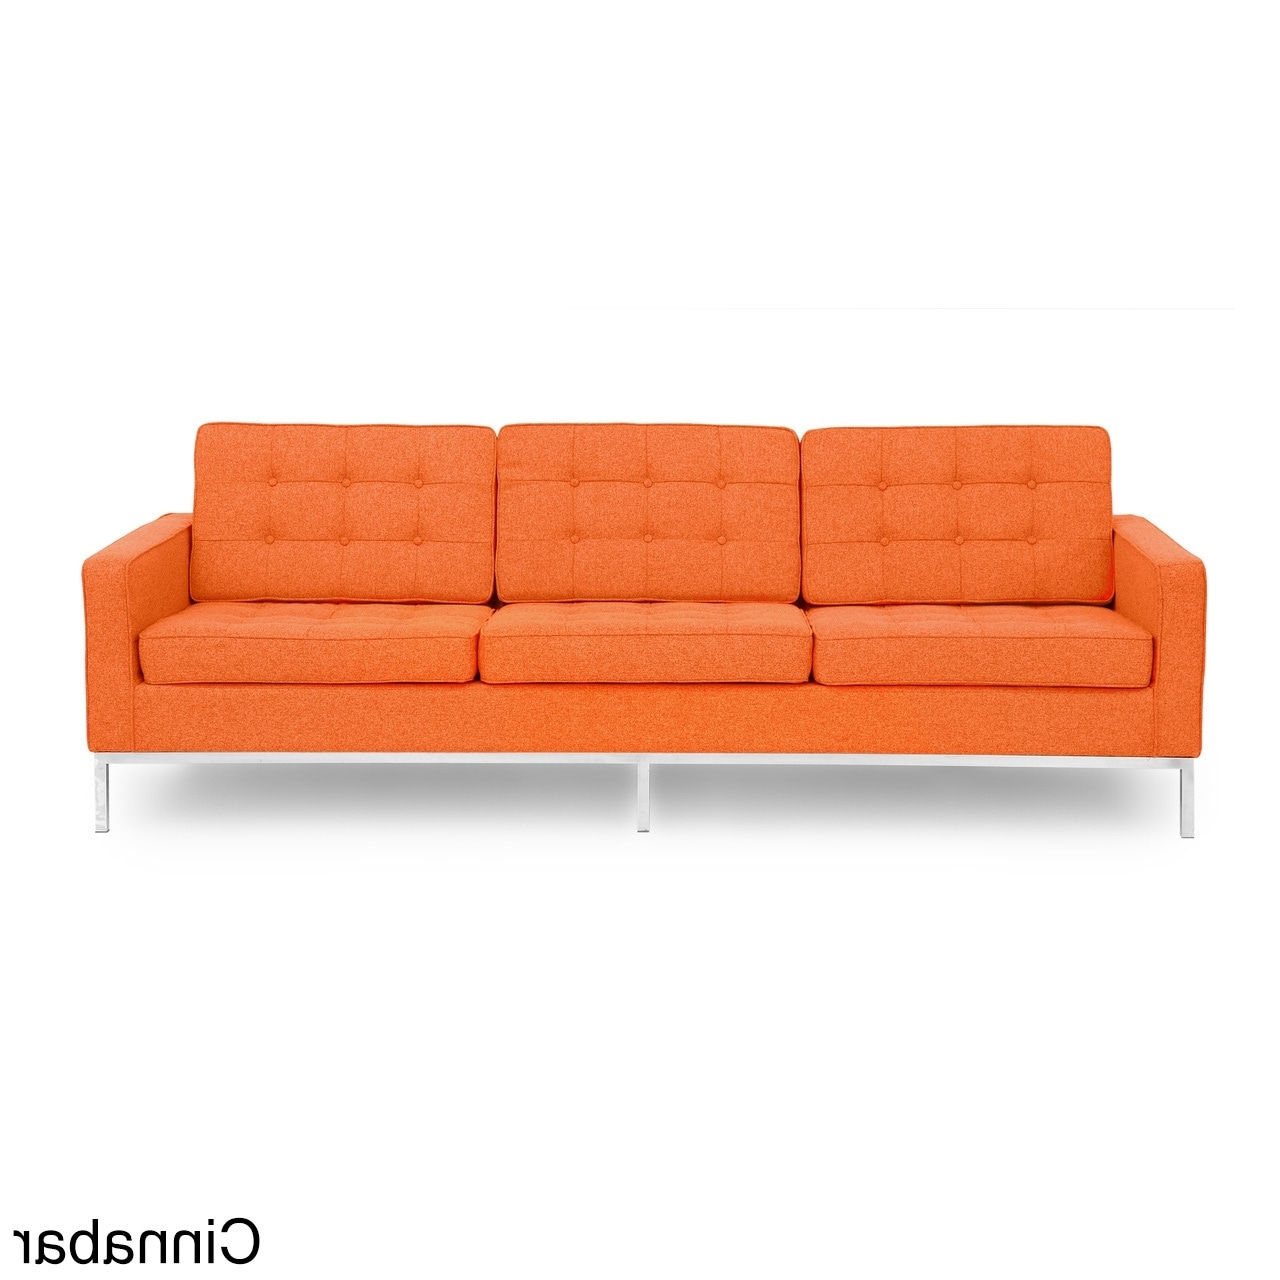 Most Up To Date Kardiel Florence Knoll Style Sofa 3 Seat, Premium Fabric With Regard To Florence Knoll Fabric Sofas (View 15 of 20)